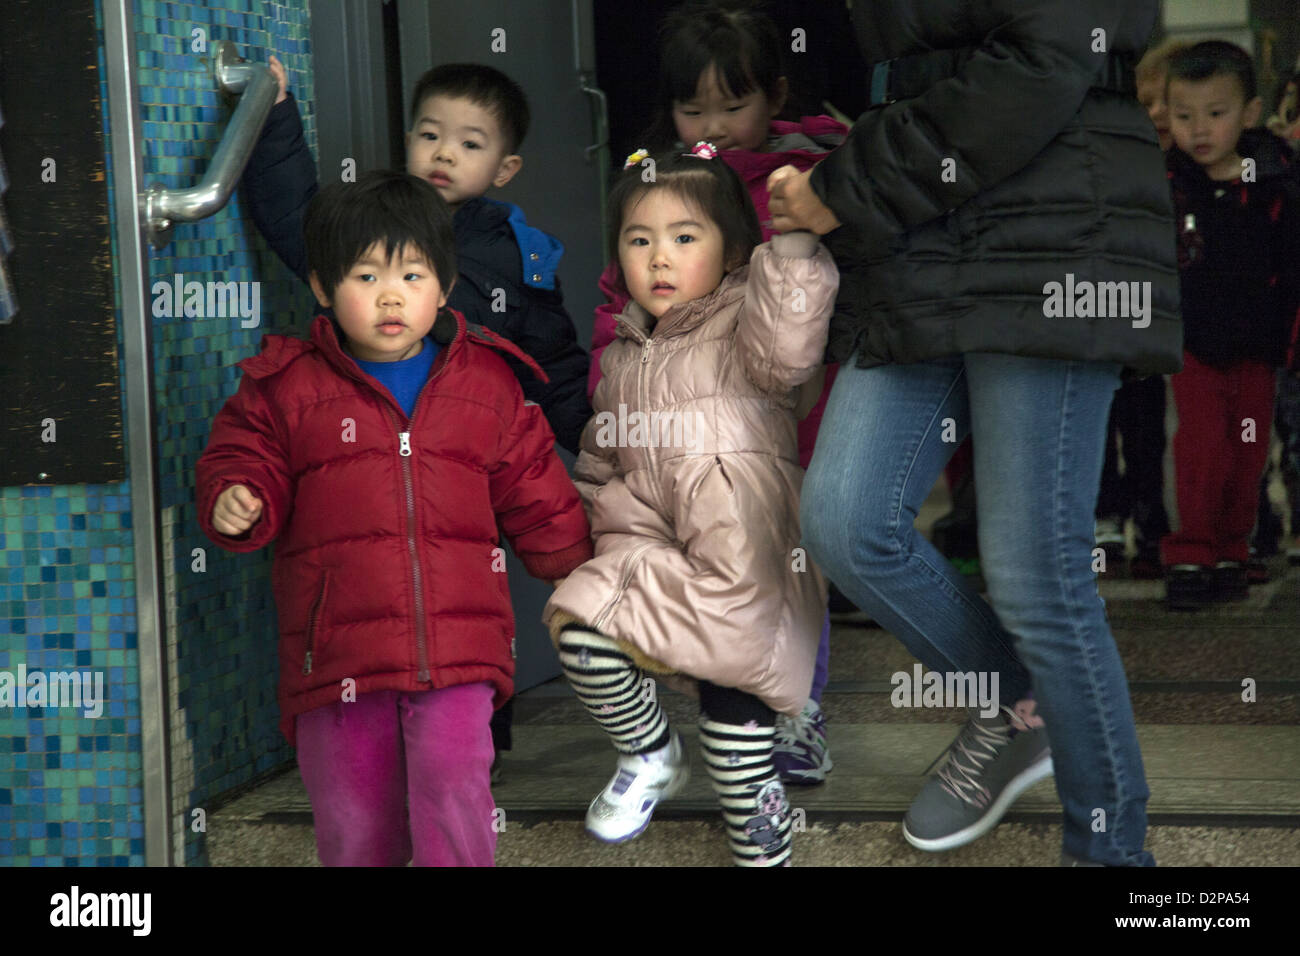 Nursery school/ day care on the Lower East Side of Manhattan. - Stock Image